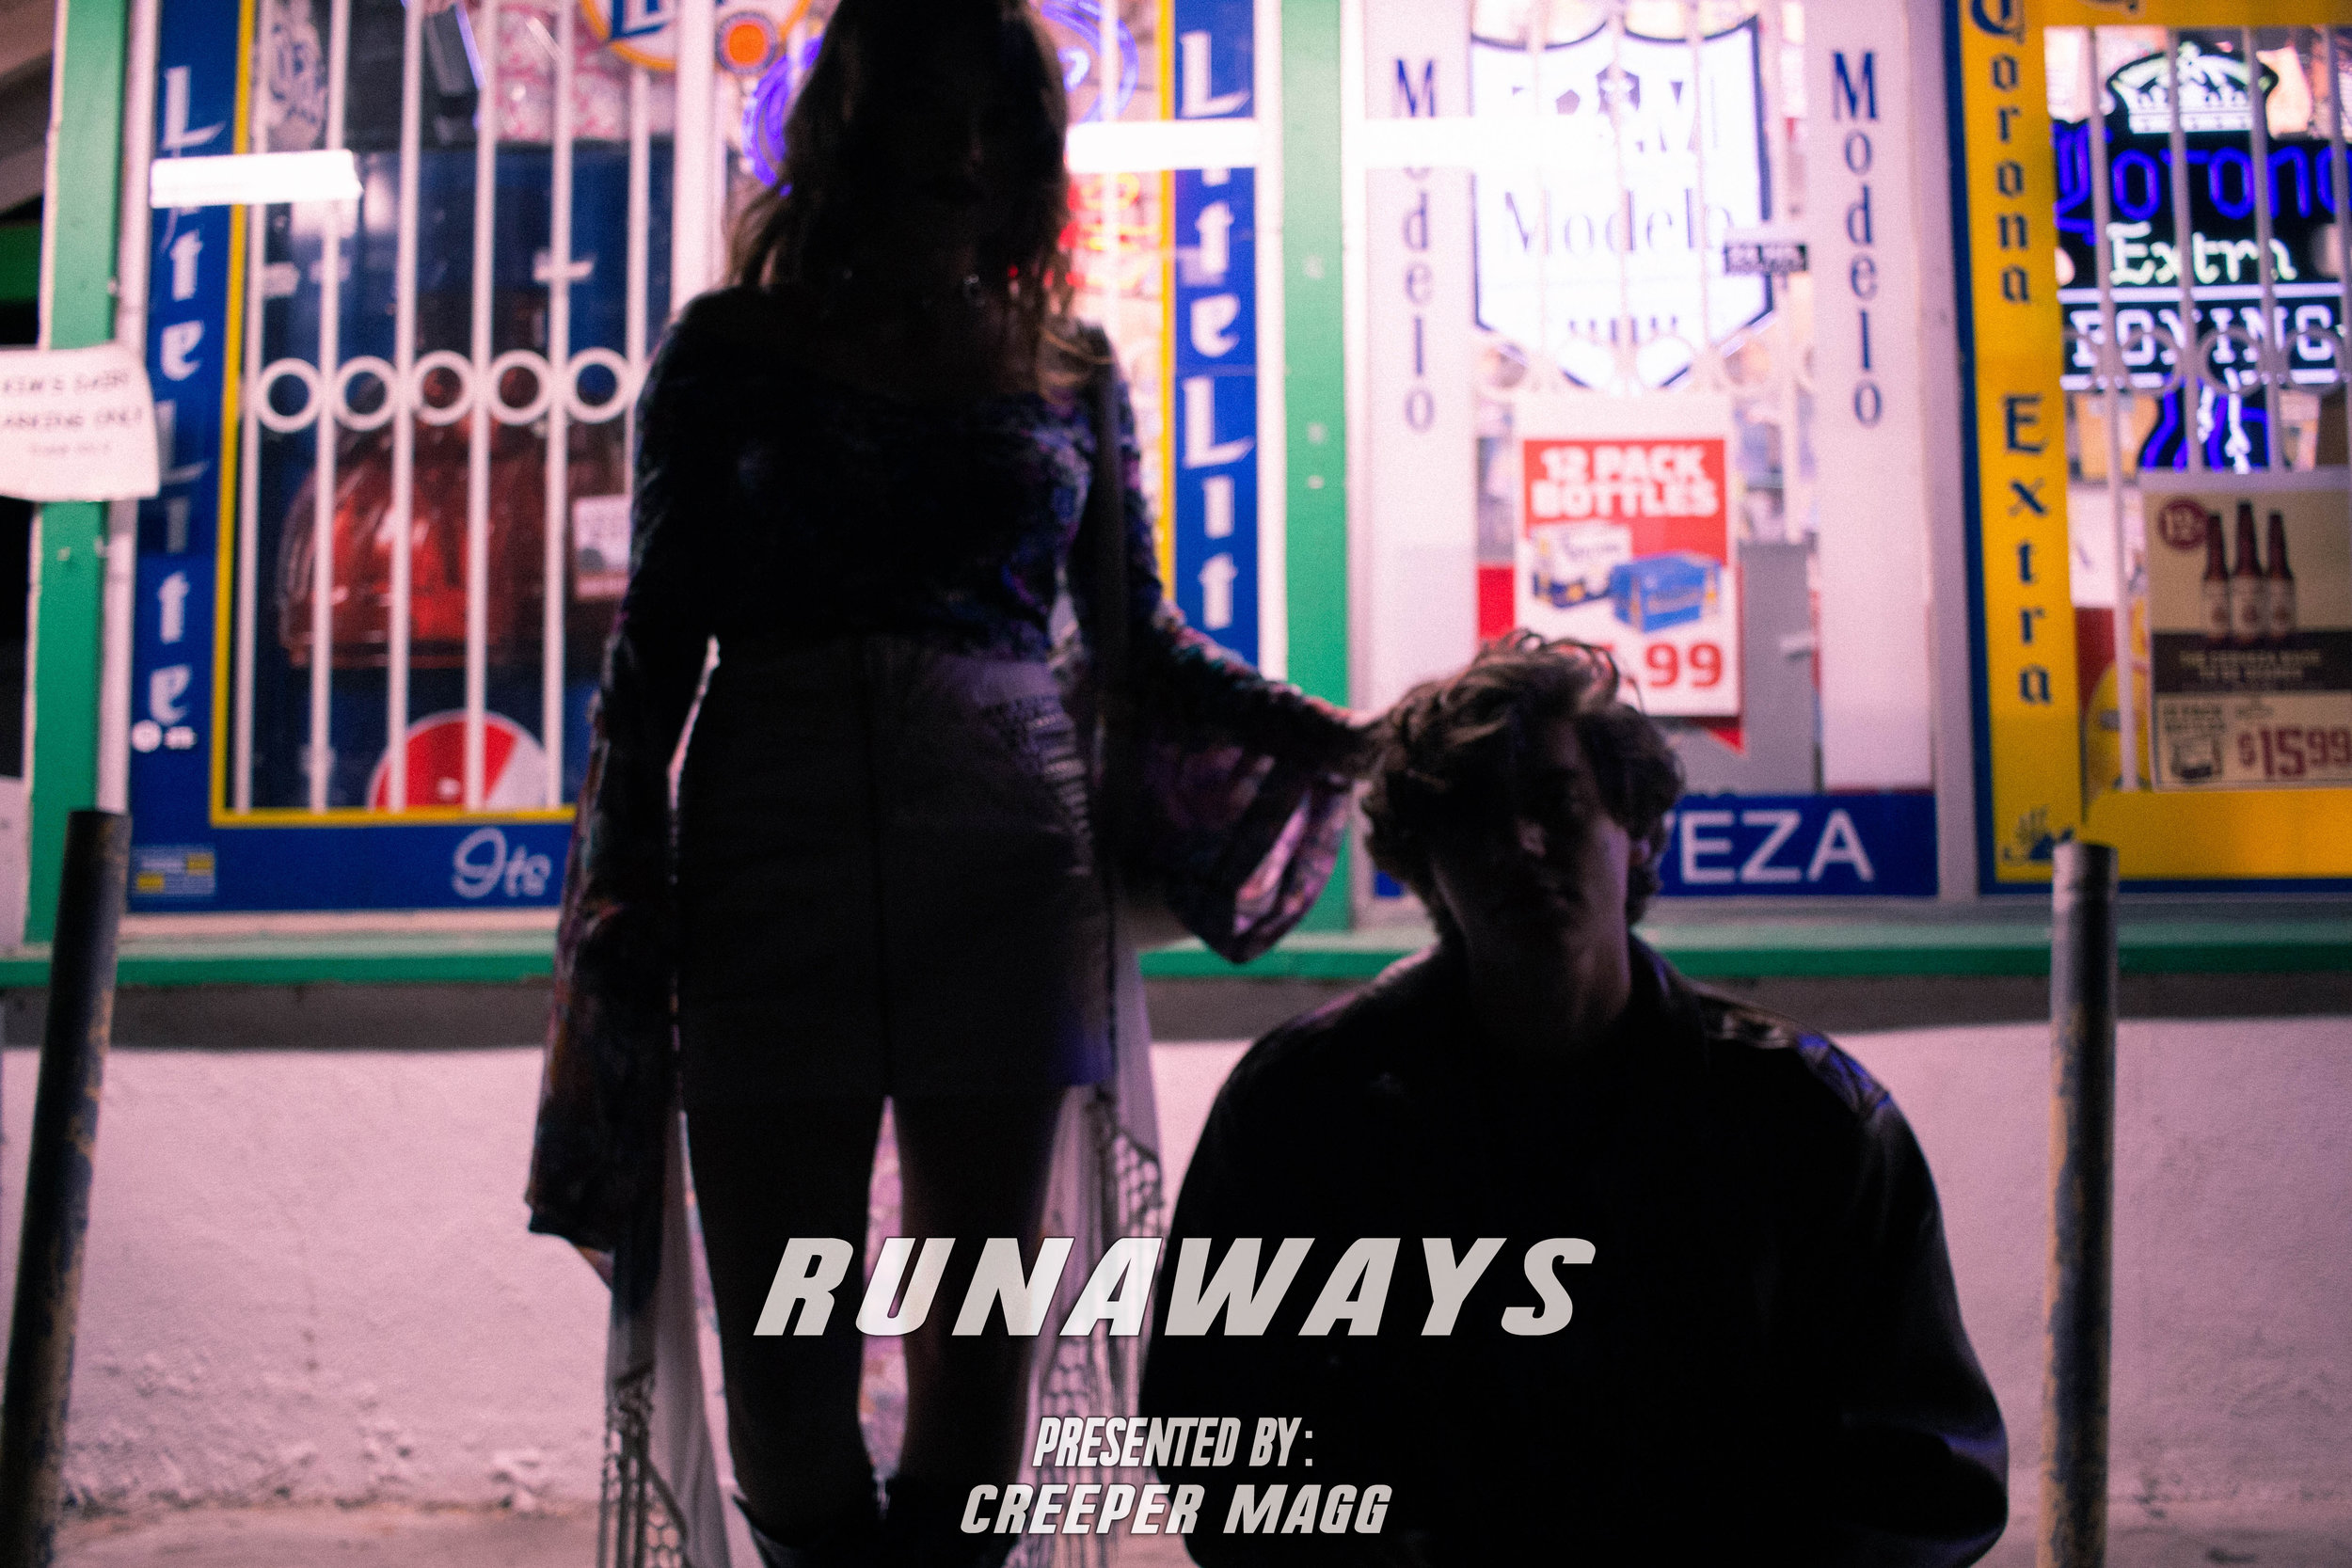 Runaways I - Film Stills/Lookbook